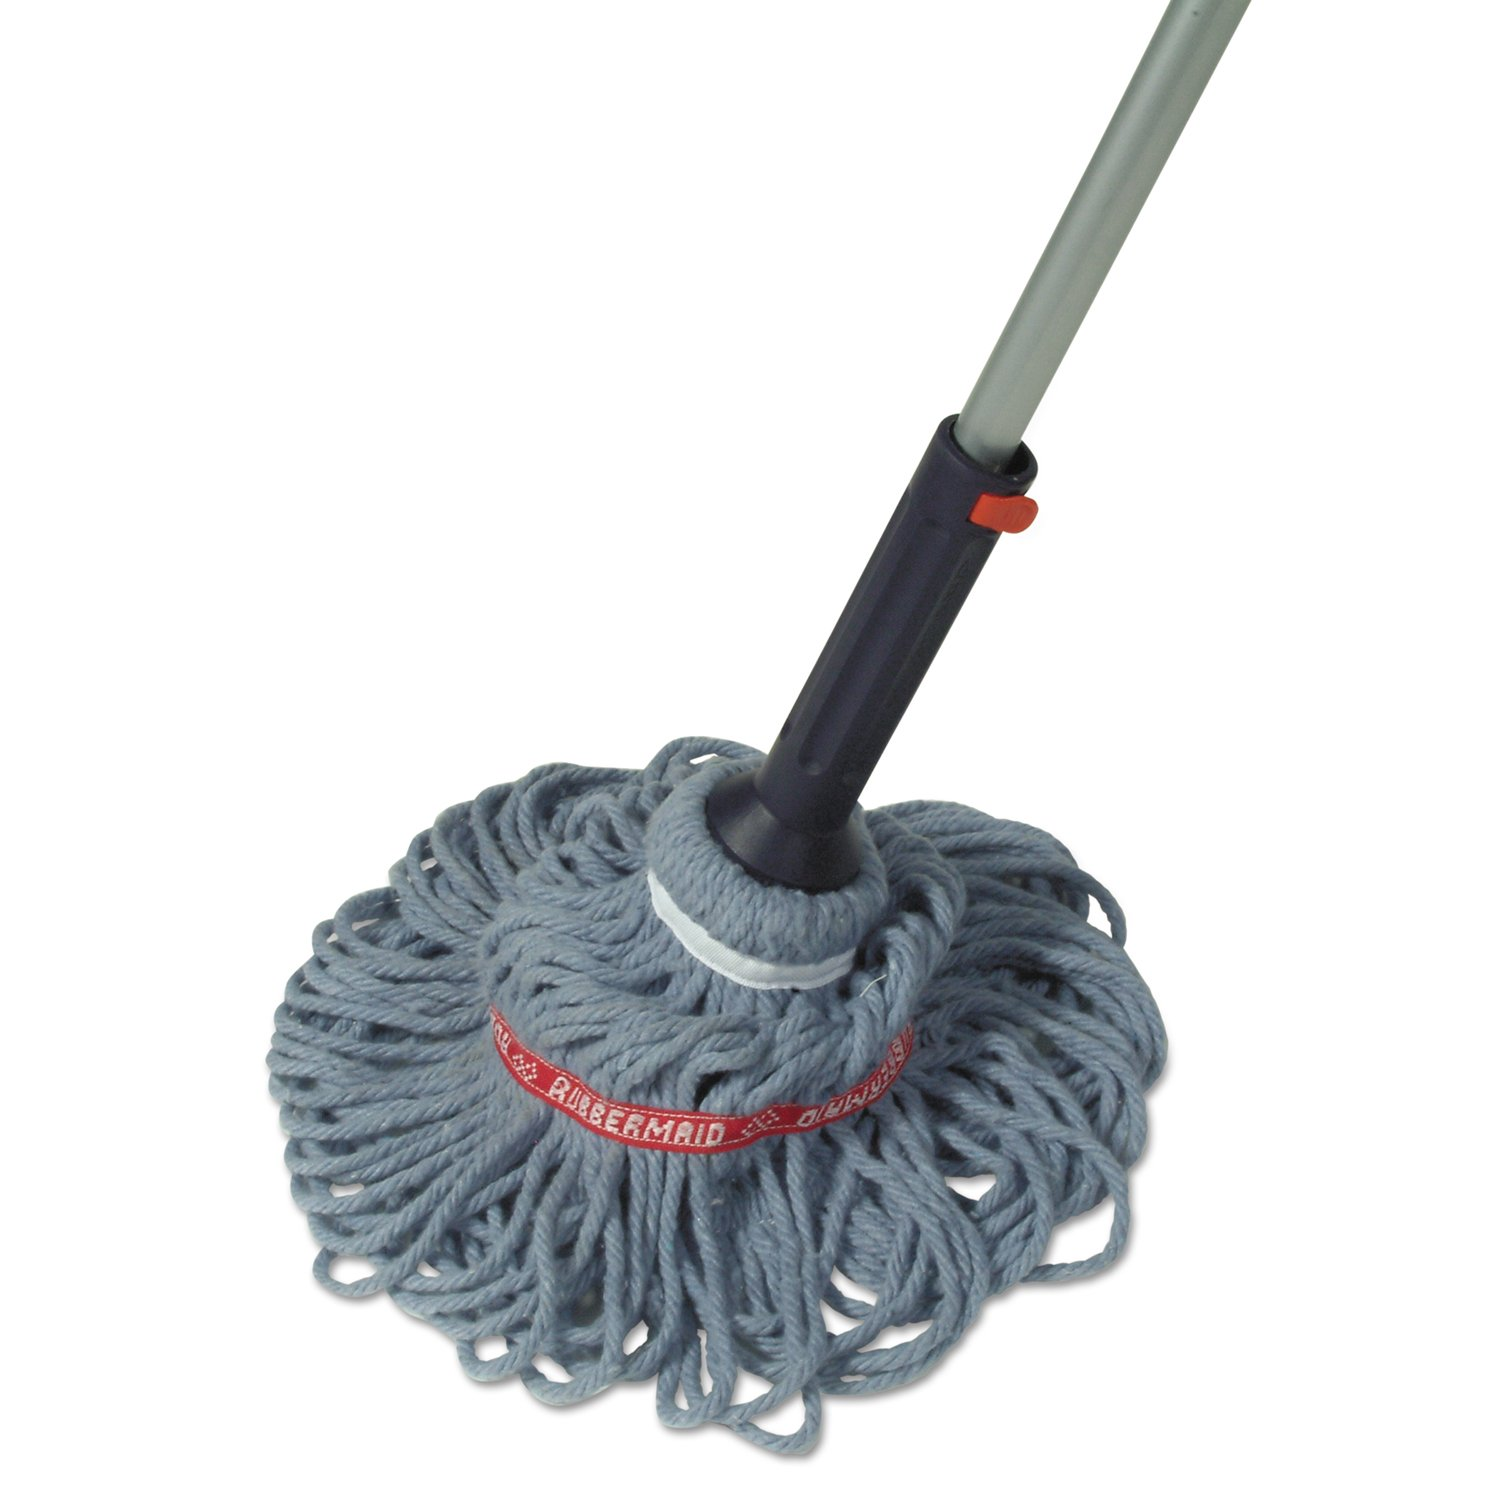 1818664 Rubbermaid Self-Wringing Ratchet Twist Mop with Blended Yarn Head 54-inch